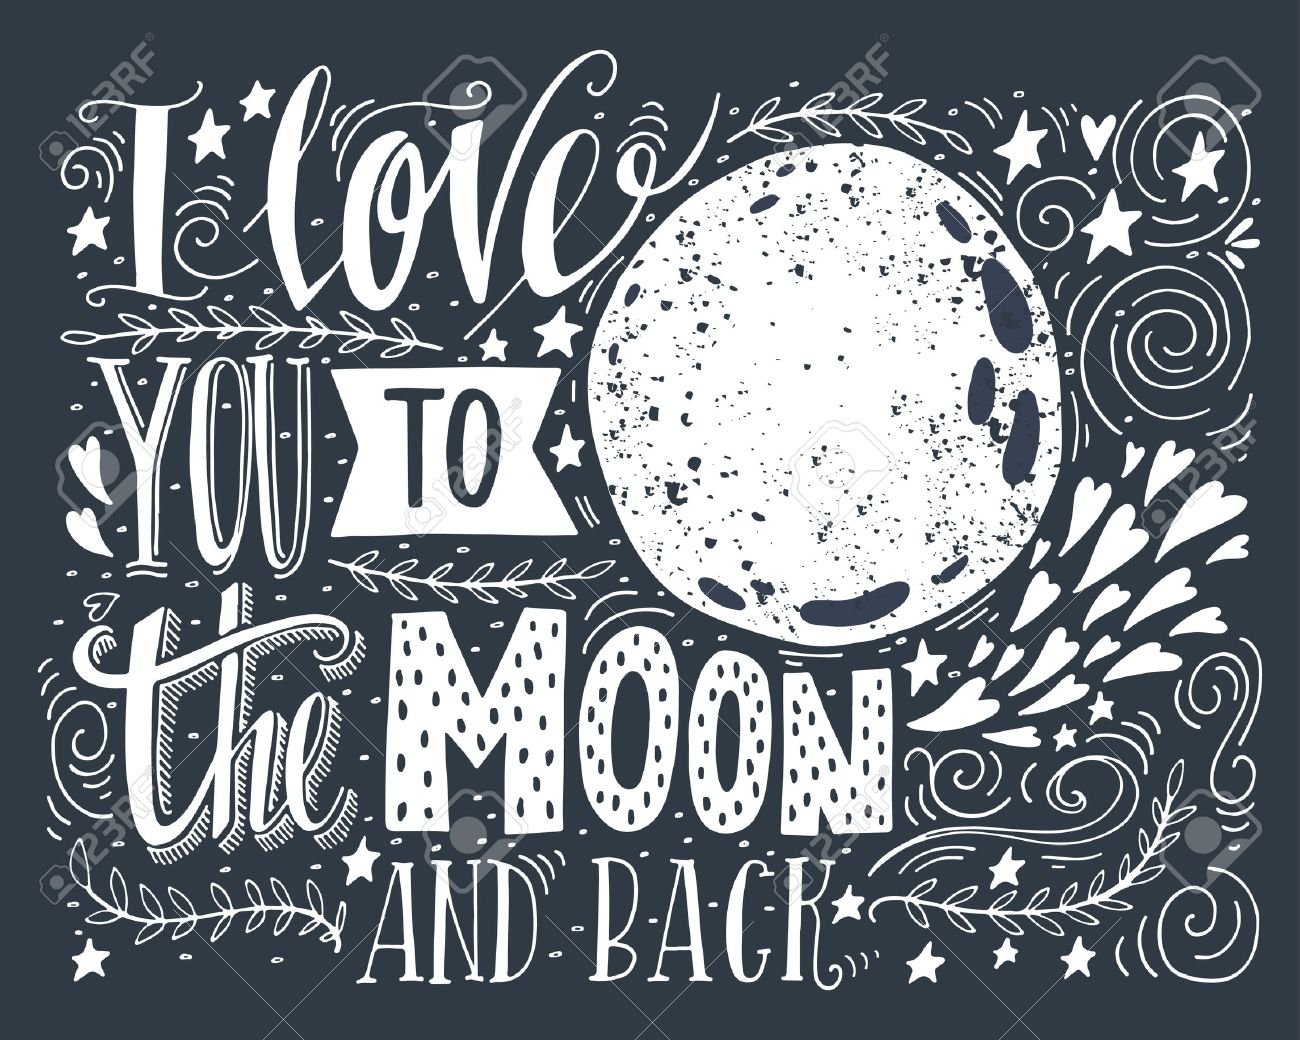 Quote I Love You To The Moon And Back I Love You To The Moon And Backhand Drawn Poster With A Romantic